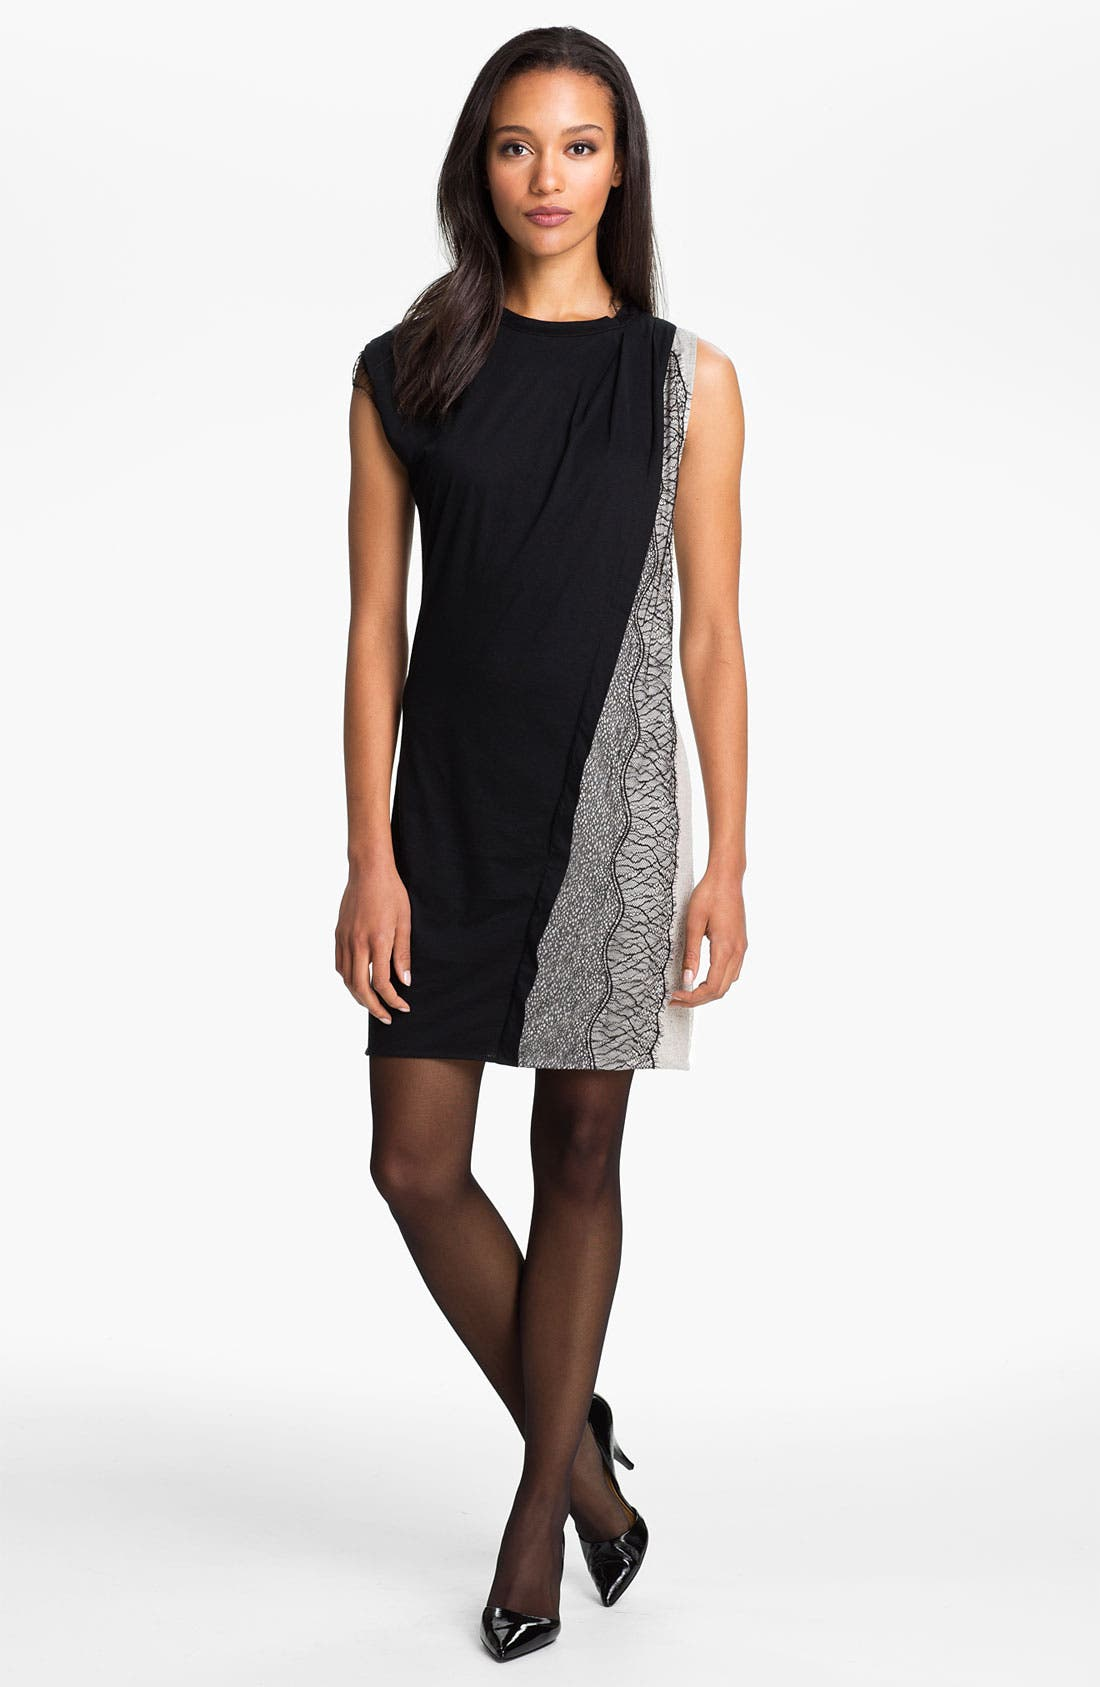 Main Image - 3.1 Phillip Lim Paneled Lace Dress